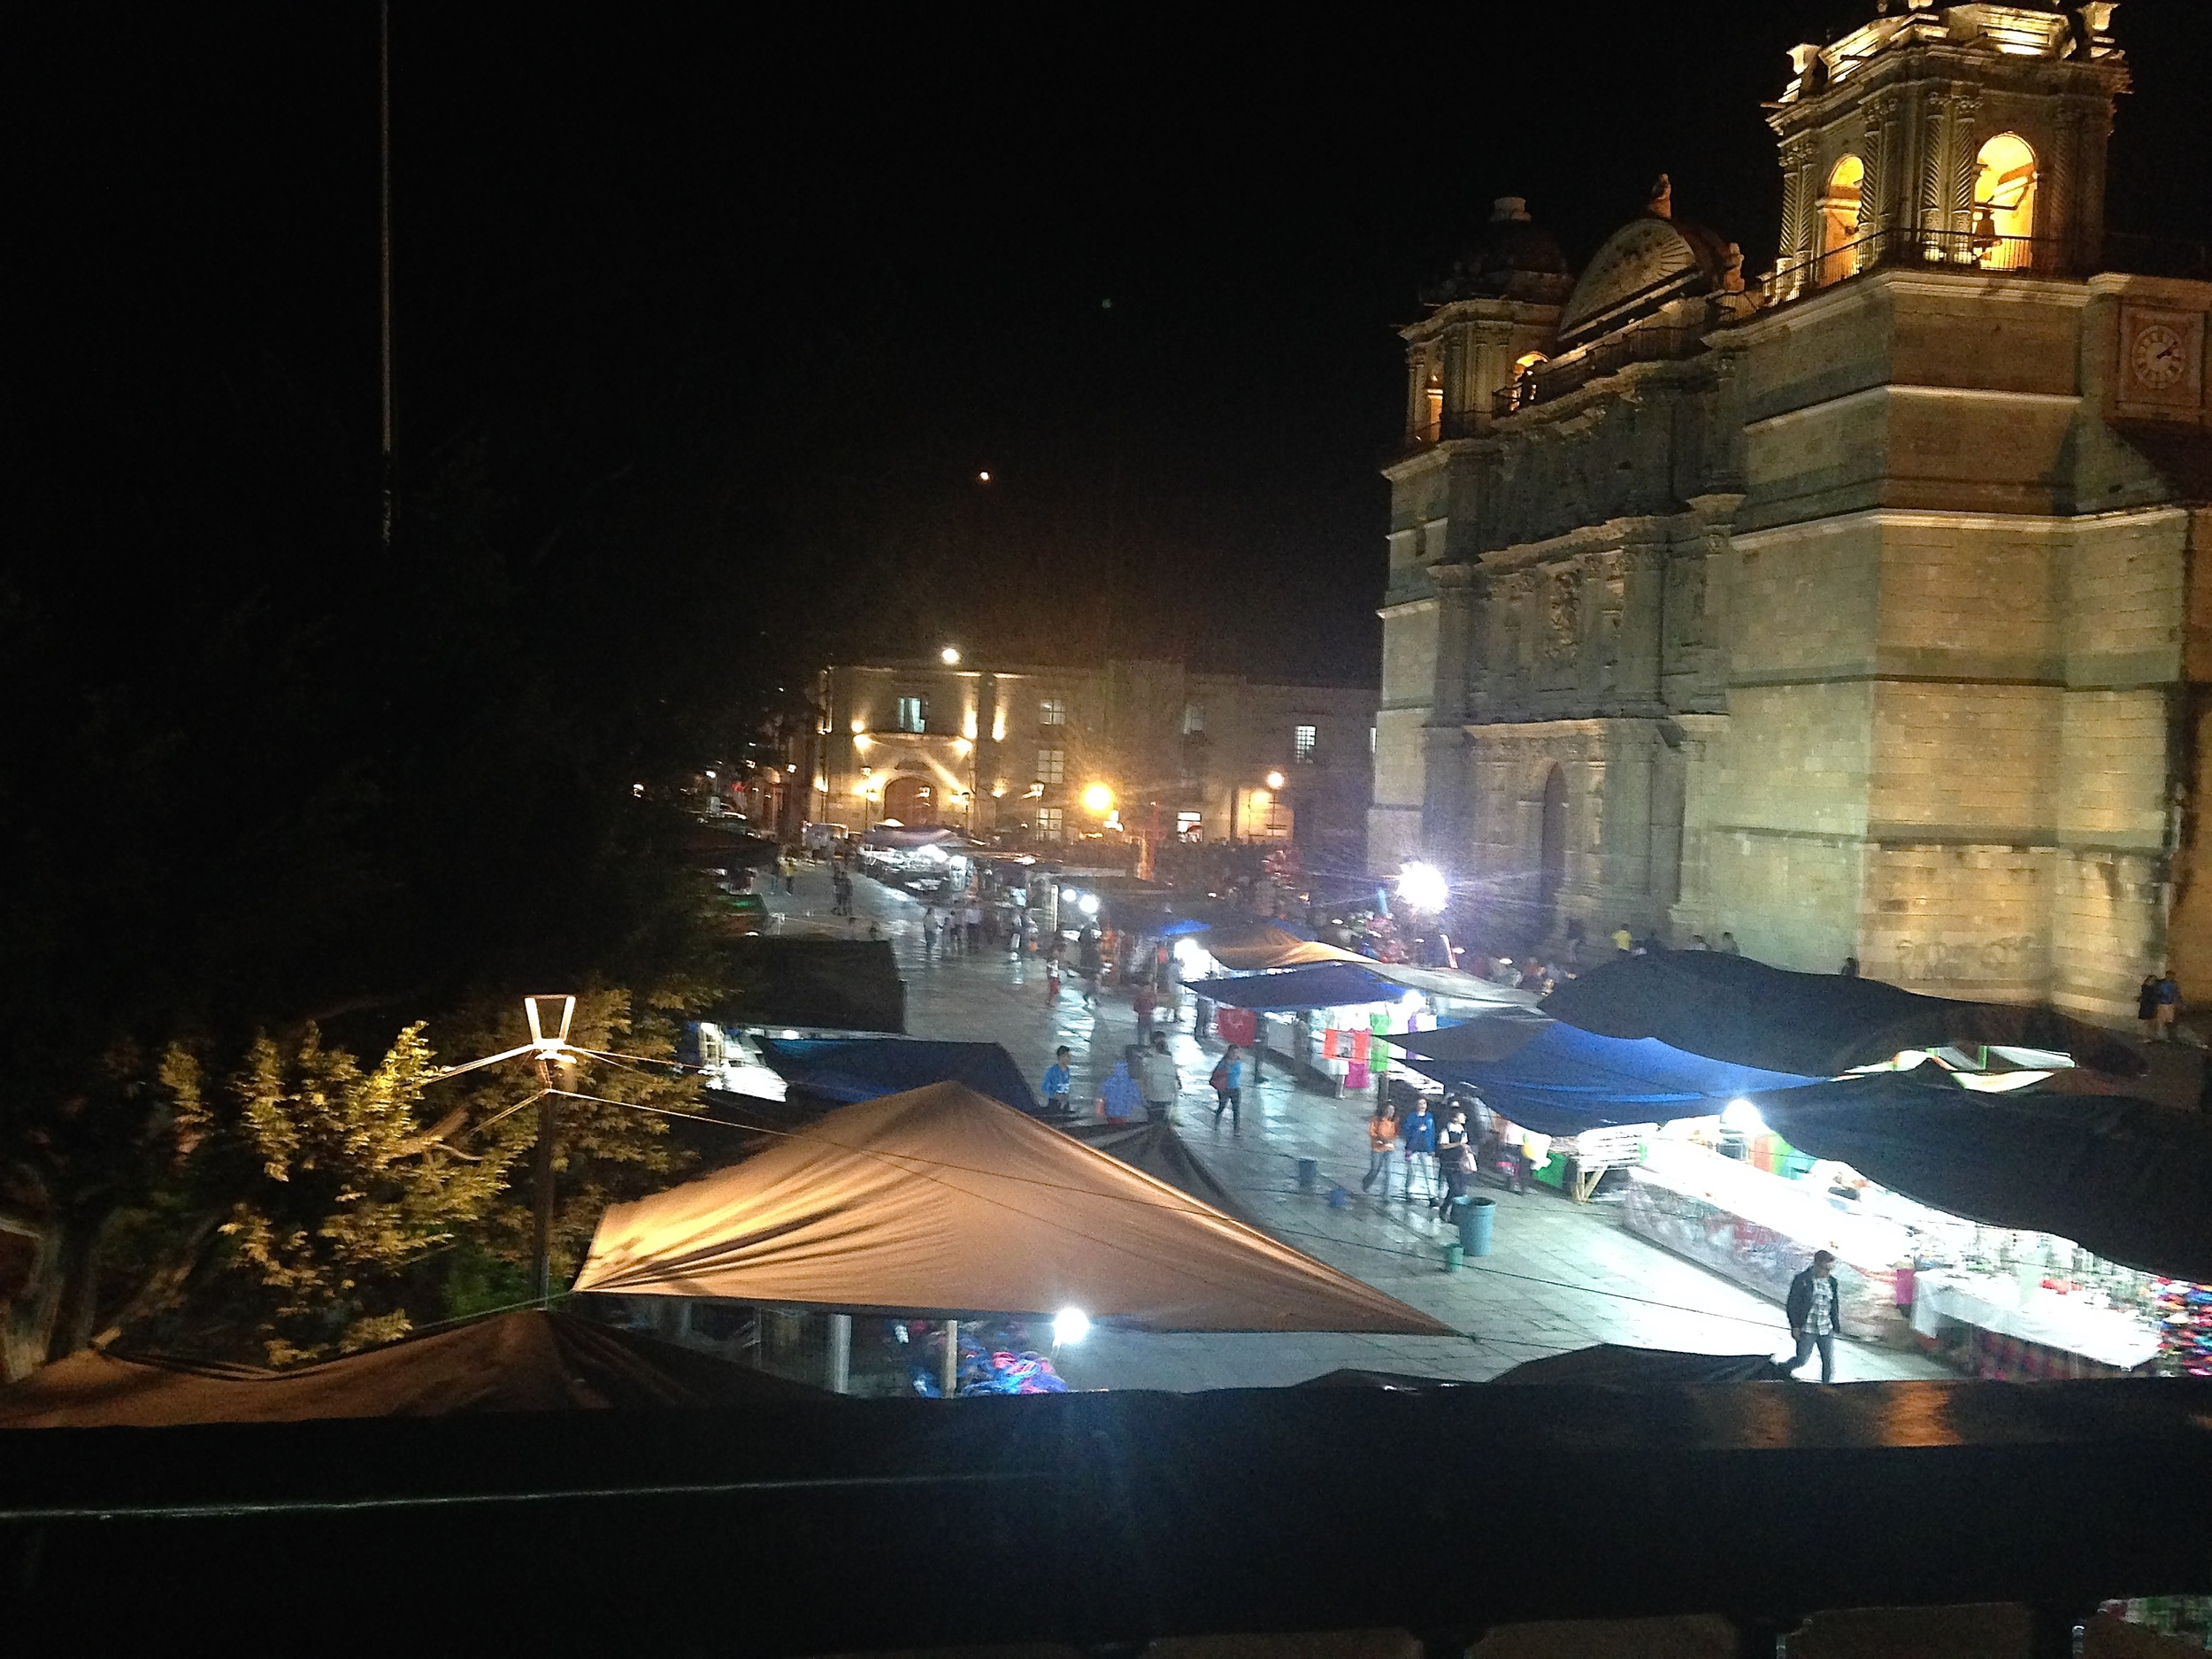 An evening in historic Oaxaca City